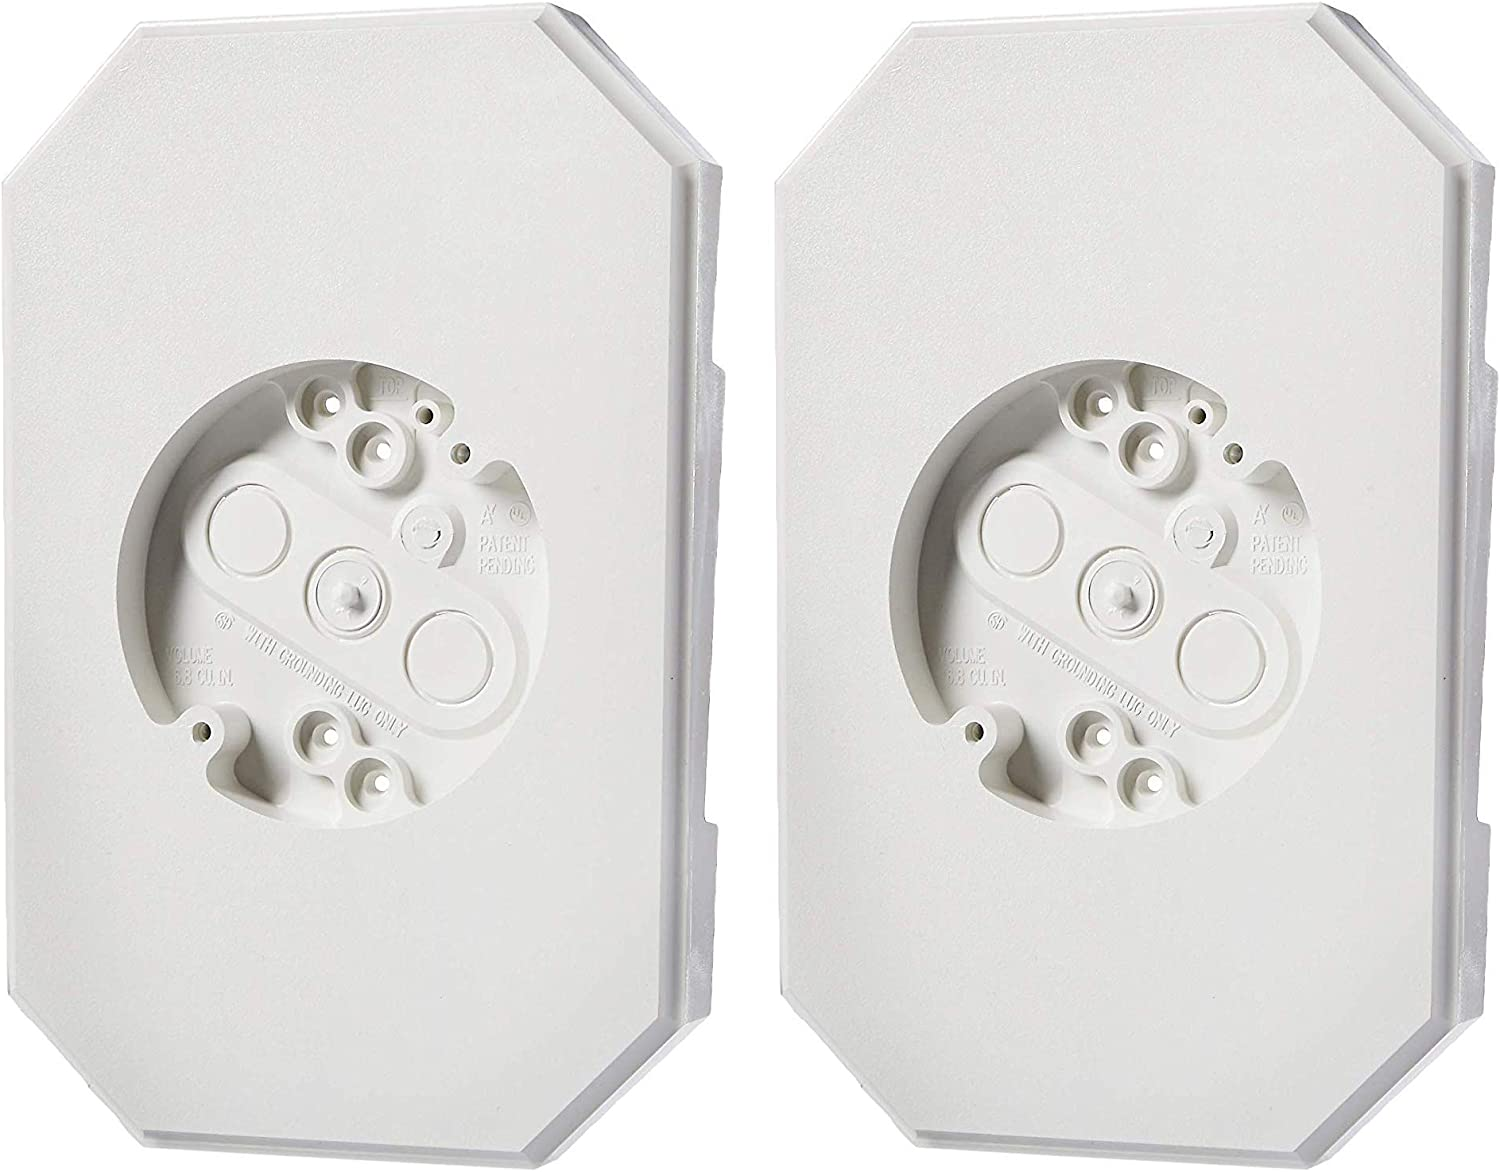 Arlington 8141DBL Siding Mounting Kits with Built-in Box, White, 1/2-Inch (2 Pack)